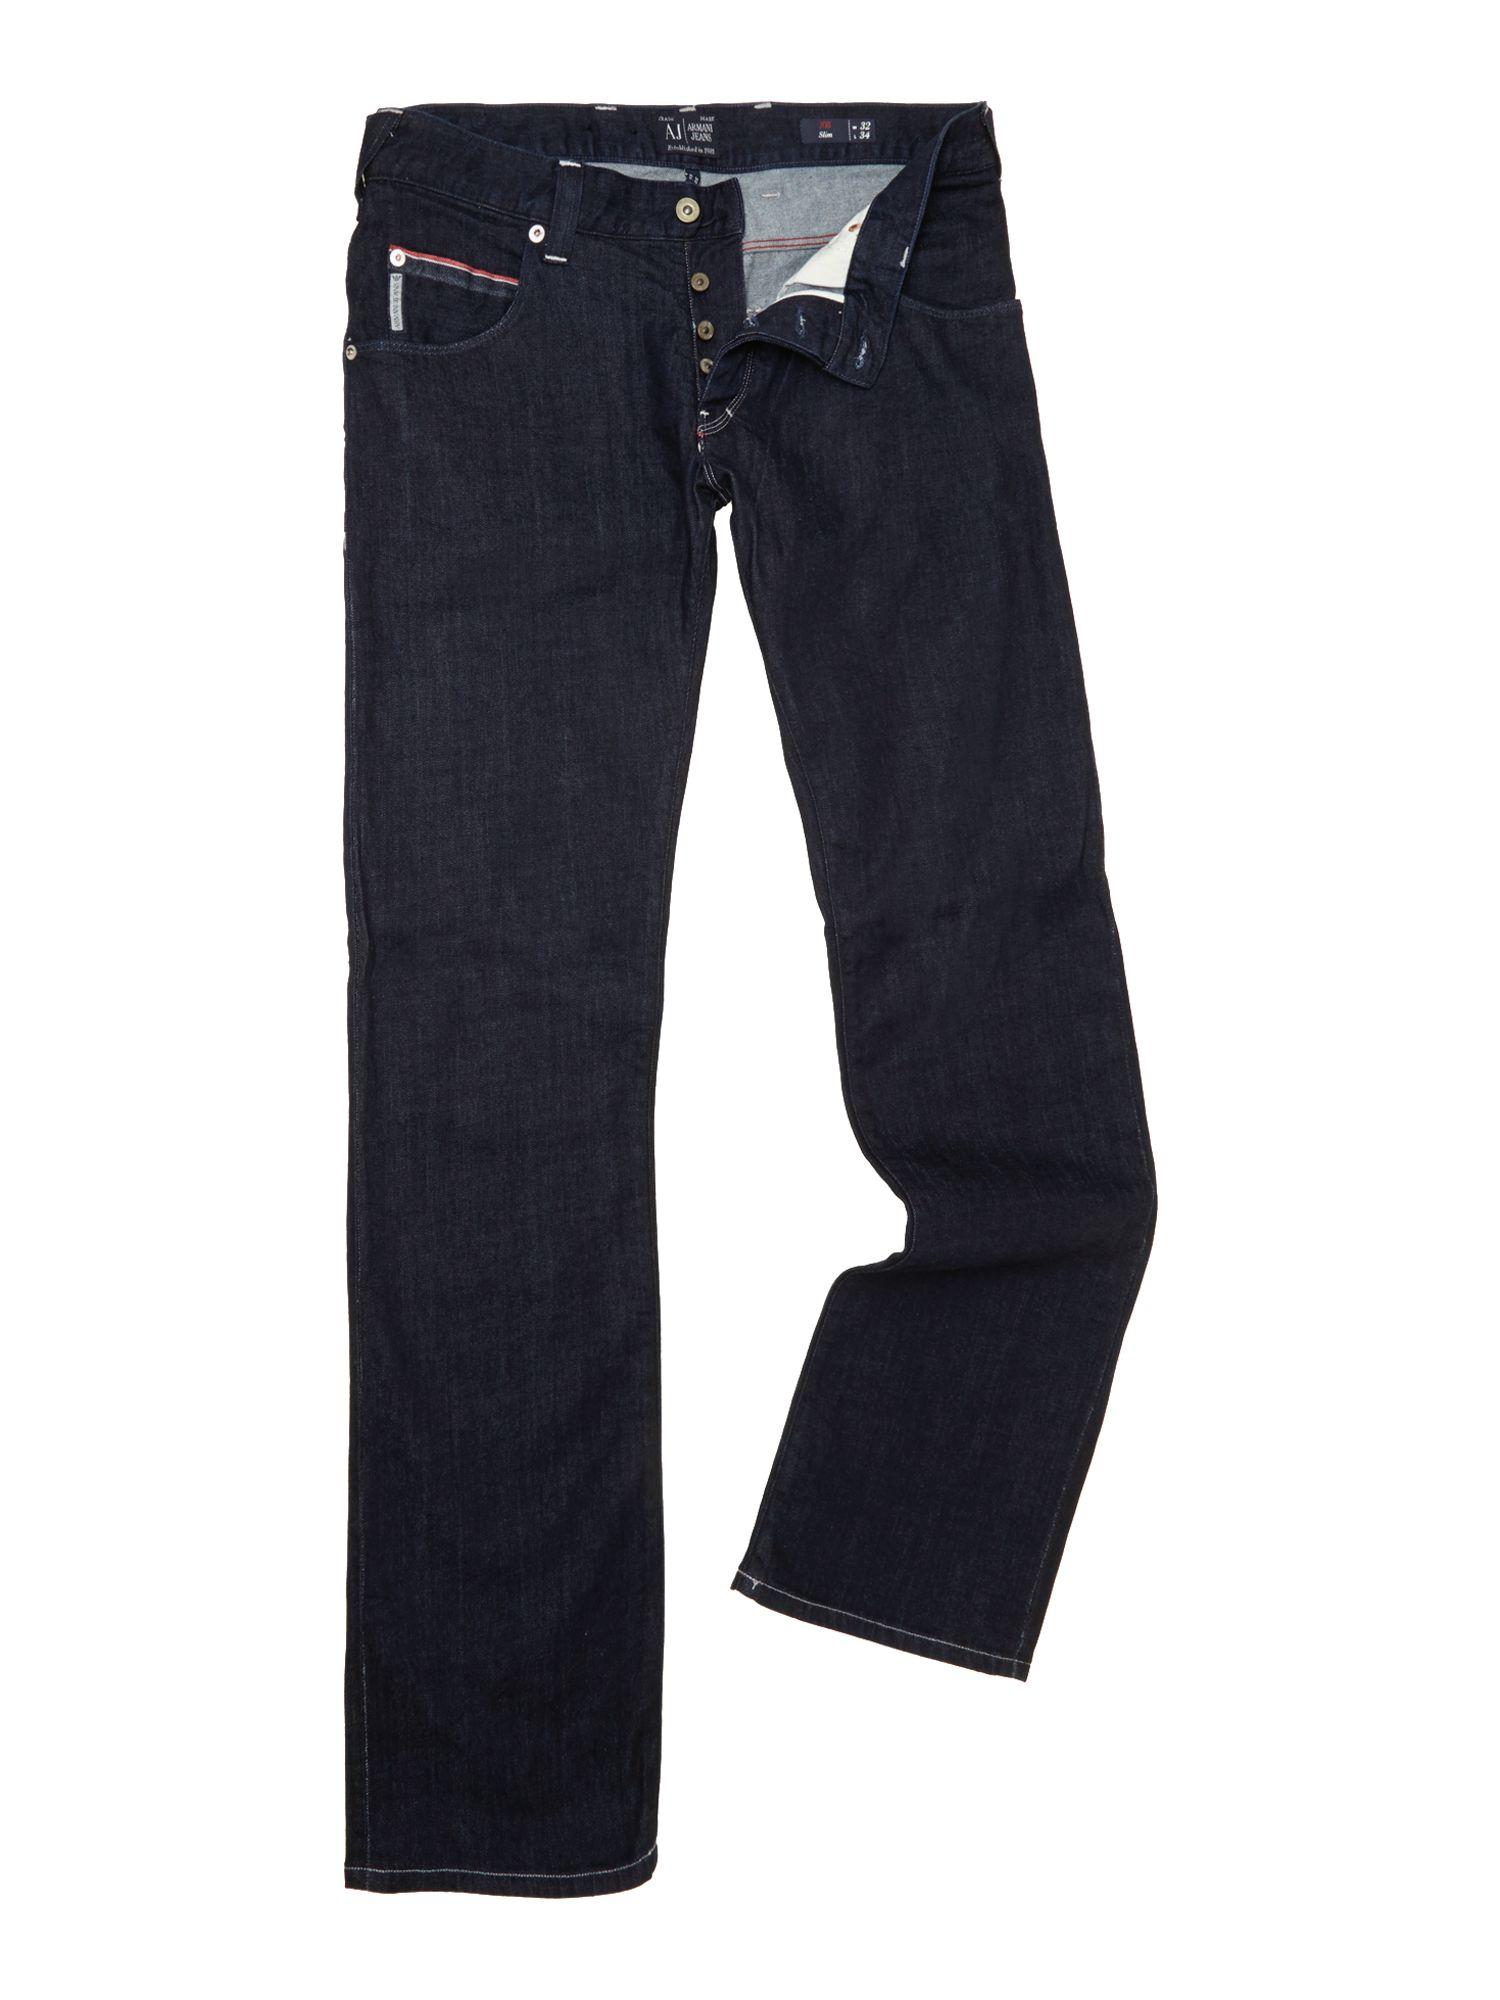 J08 armani jeans regular slim fit pocket detail